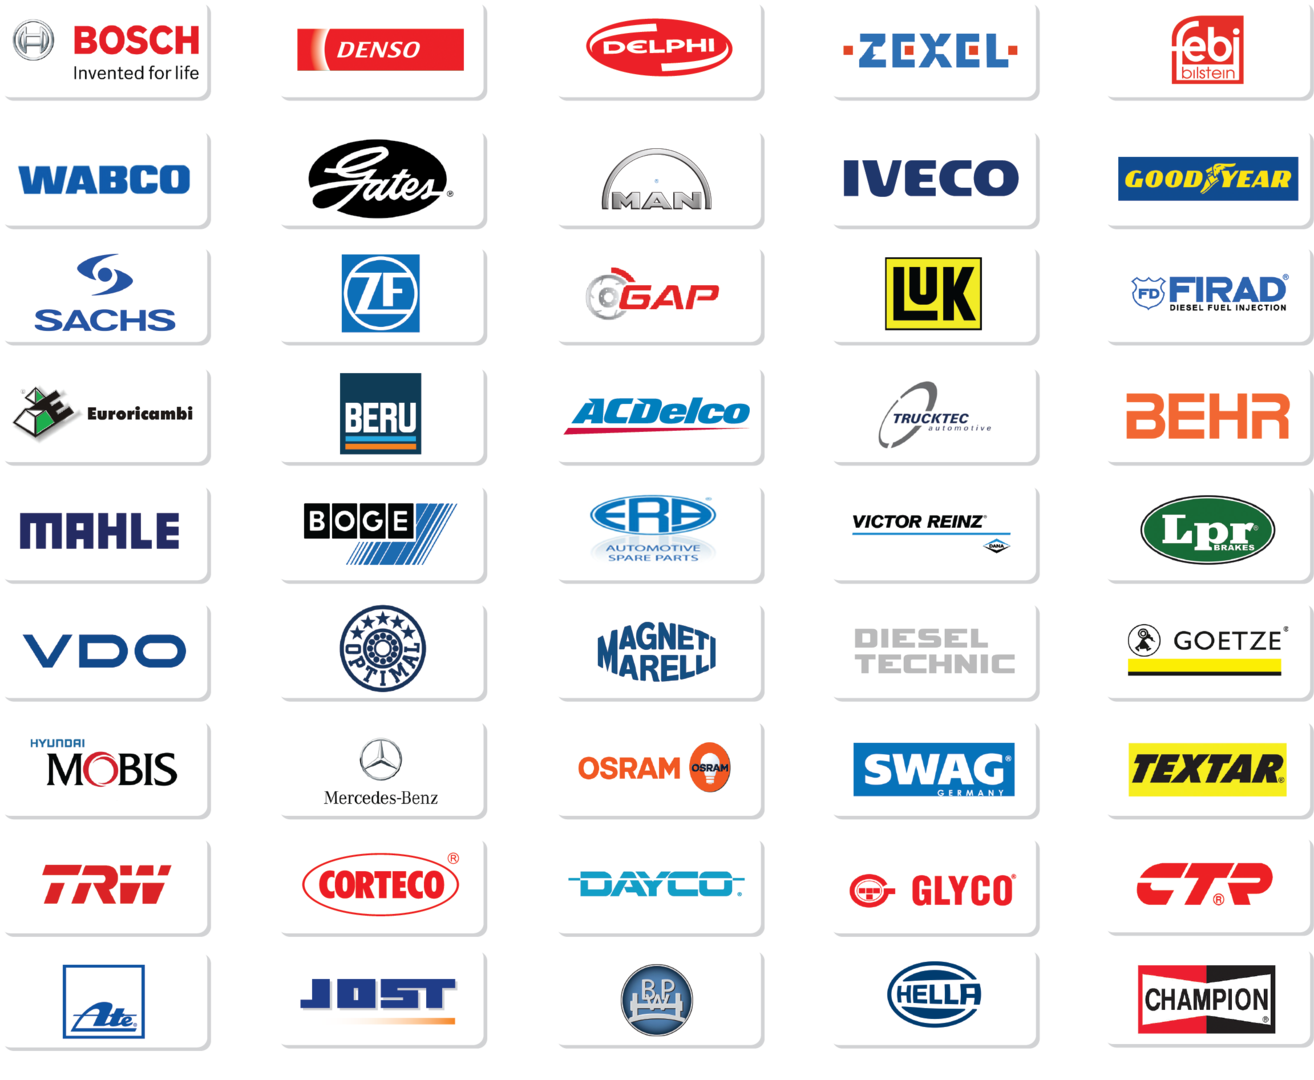 German Auto Parts >> Arzberg Auto Auto Parts Bosch Automotive Parts